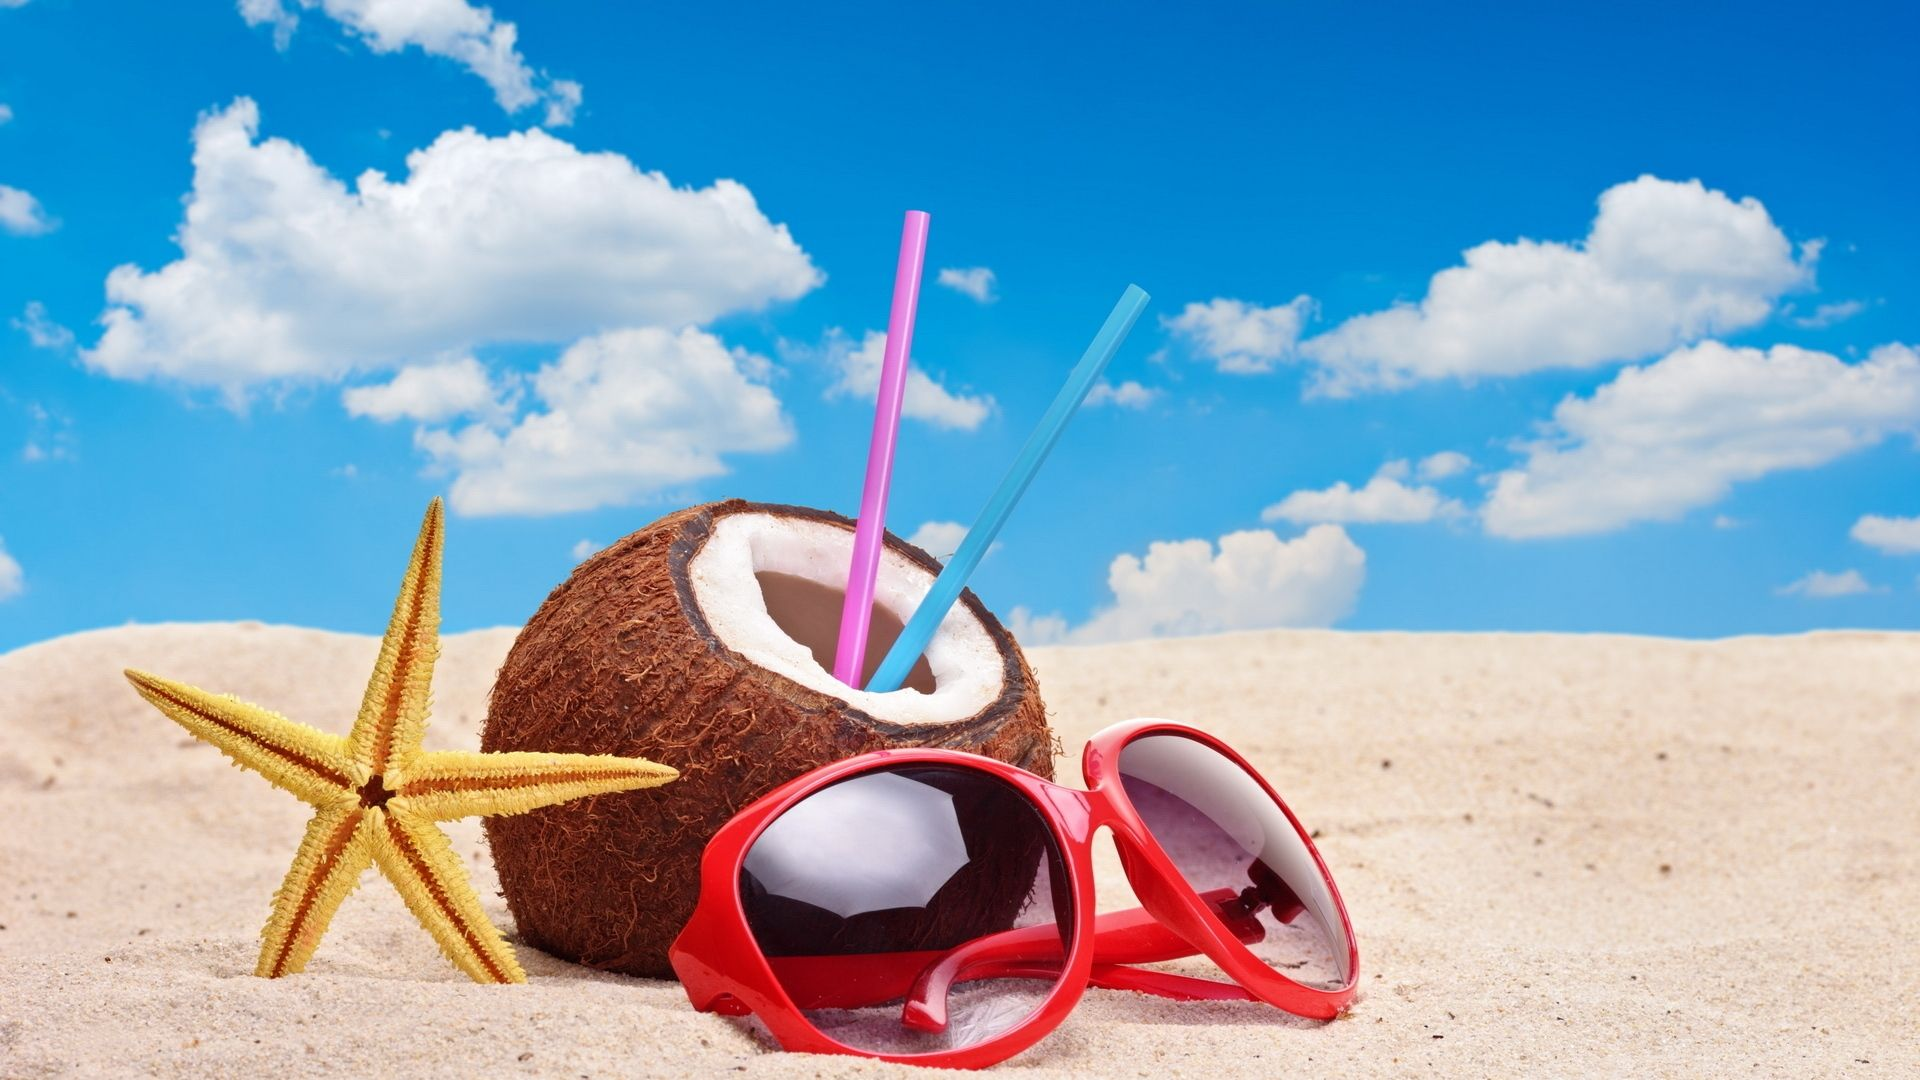 summer | colourful summer accessories wallpaper | hd desktop